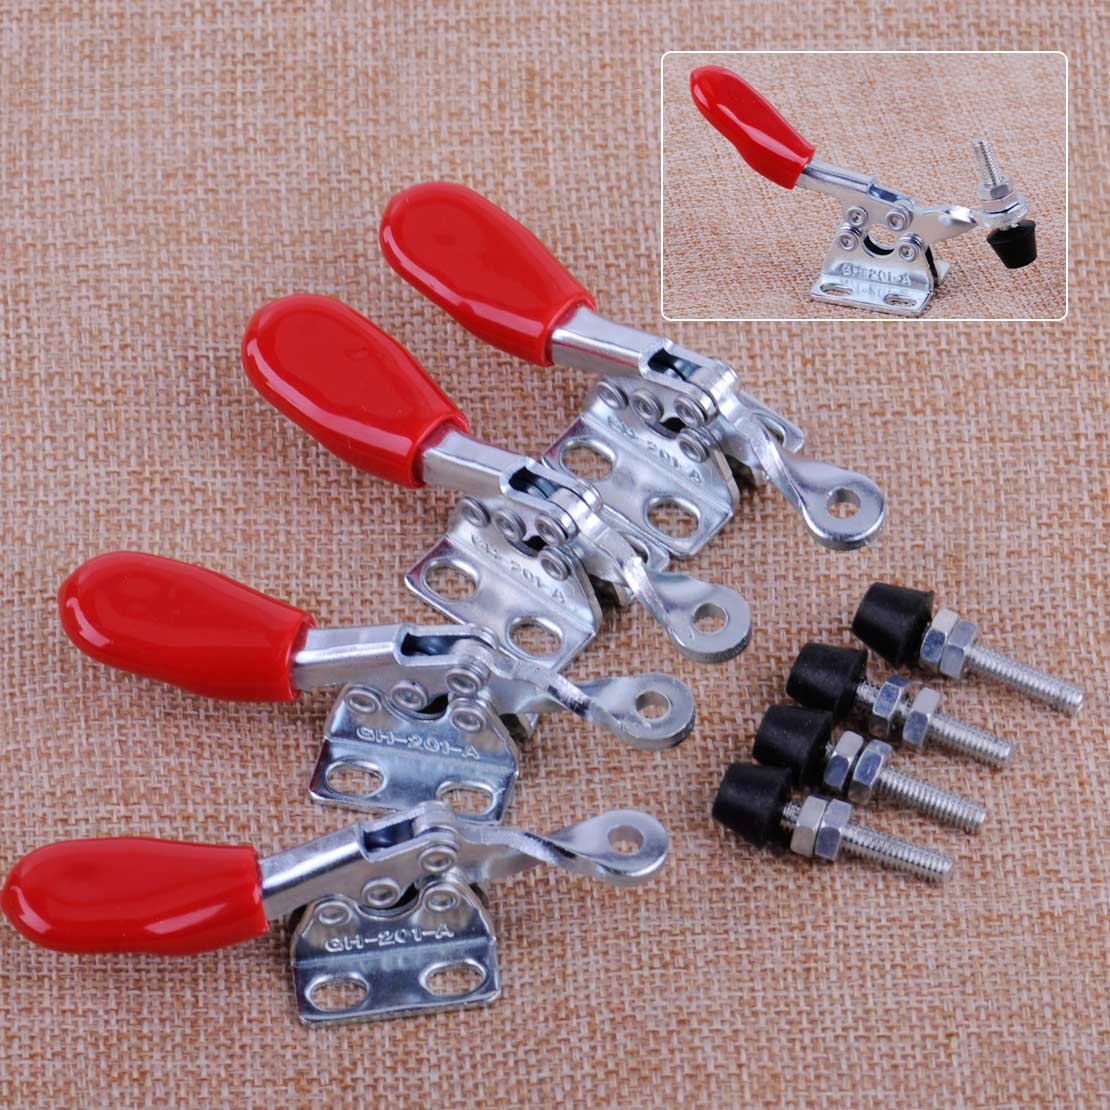 LETAOSK 4Pcs Red Handle Toggle Clamp GH-201A Horizontal Hold Quick-Release Hand Tool